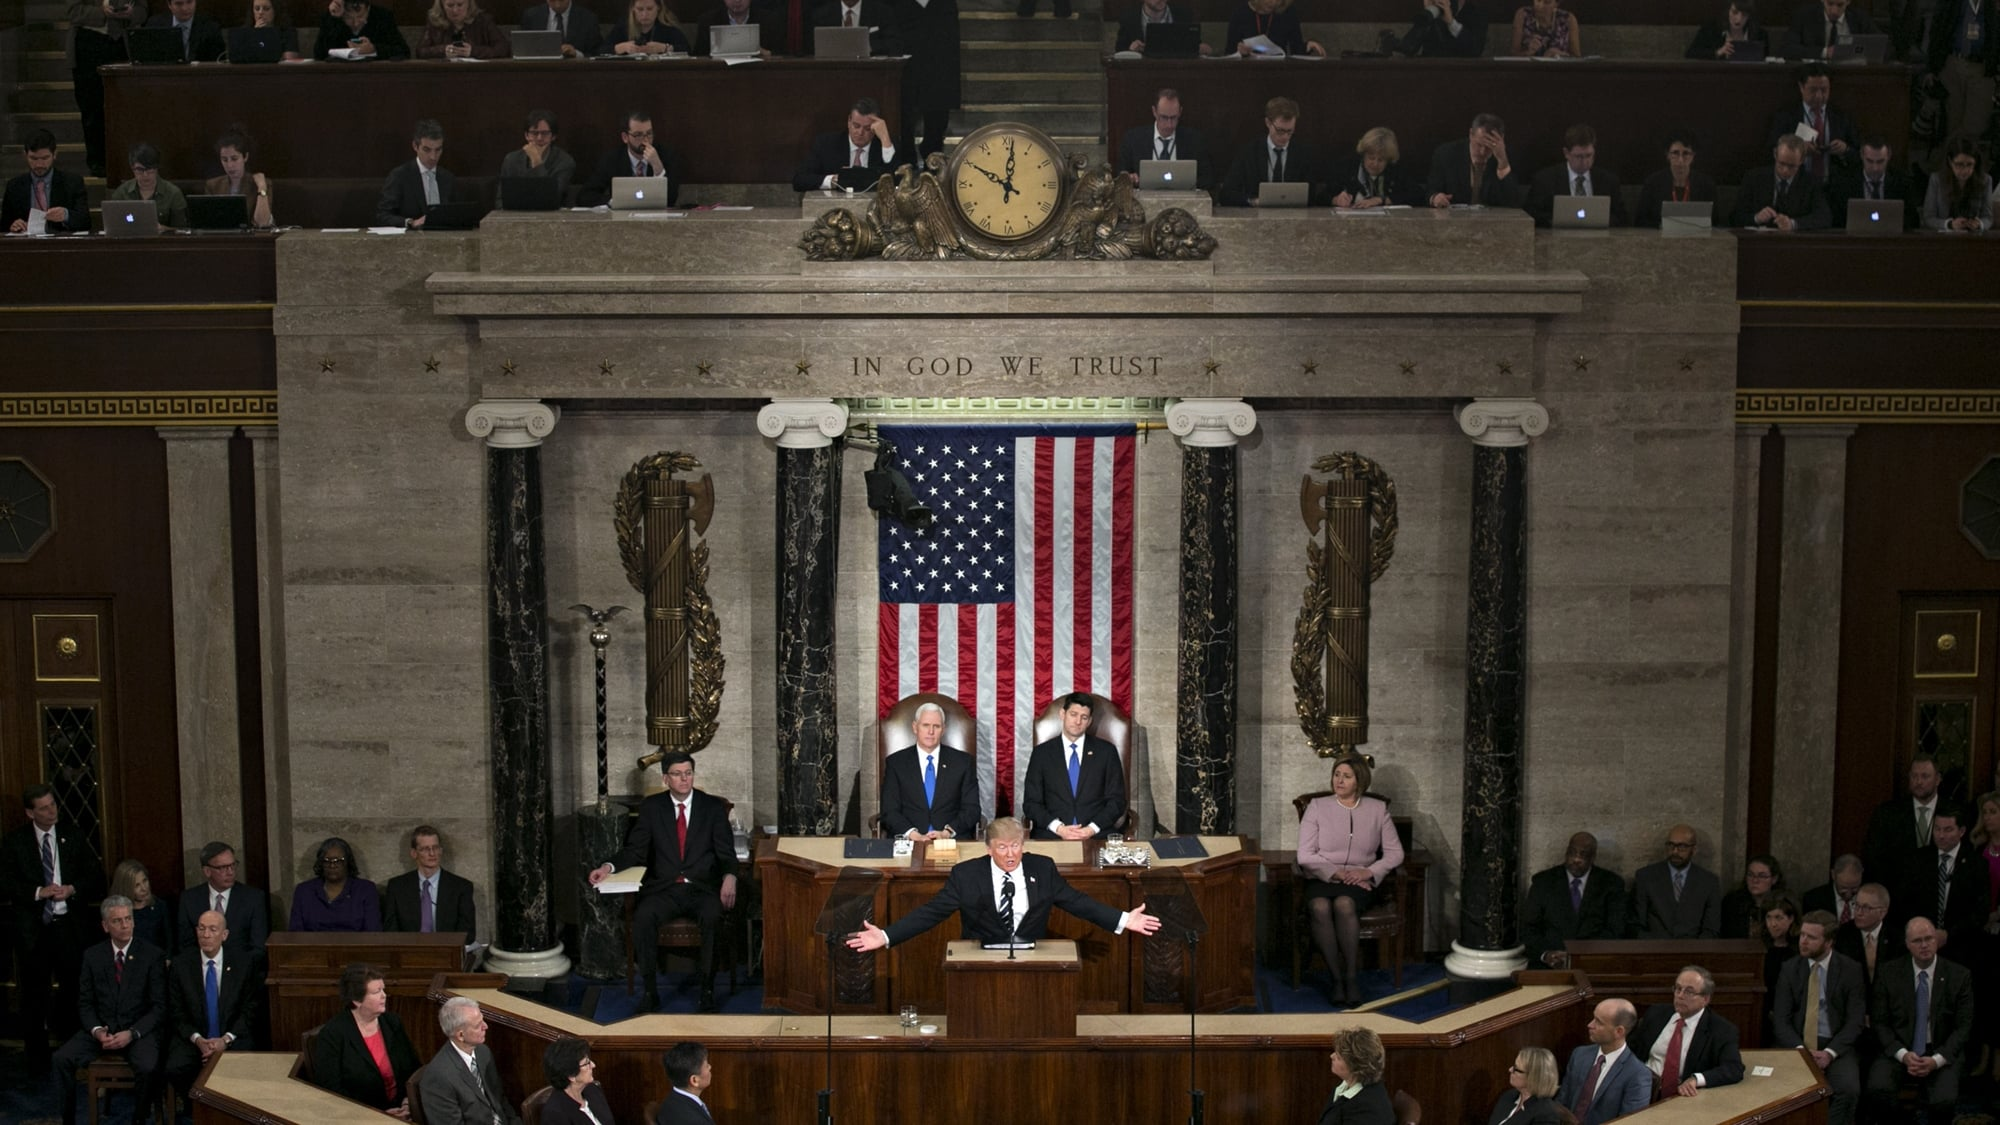 Special Report: President Trump's address to Congress